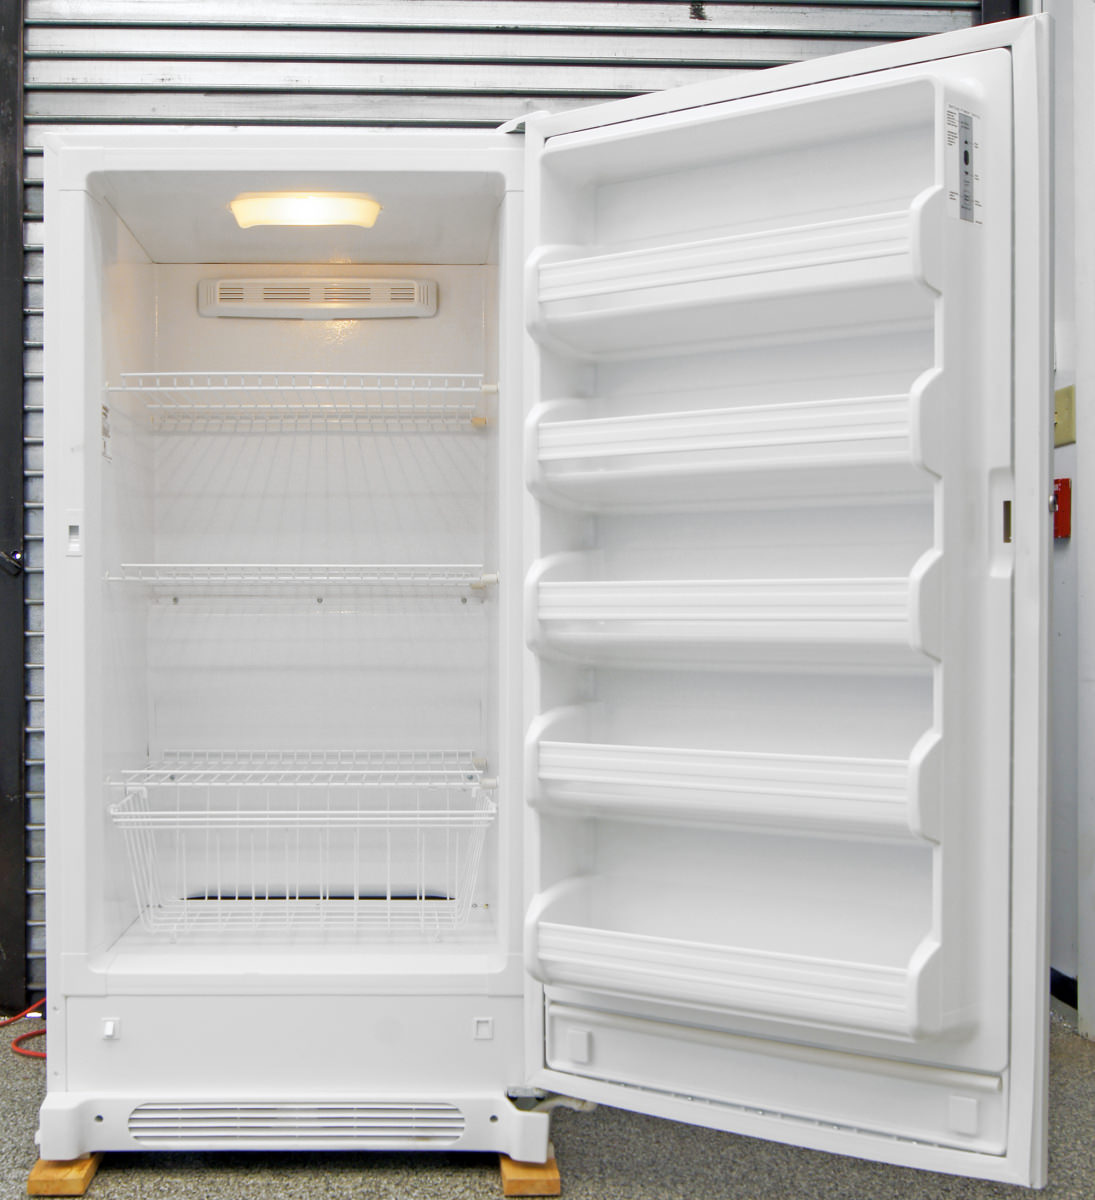 kenmore upright freezer model 253. like most budget uprights, none of the shelves in this freezer are adjustable. kenmore upright model 253 c